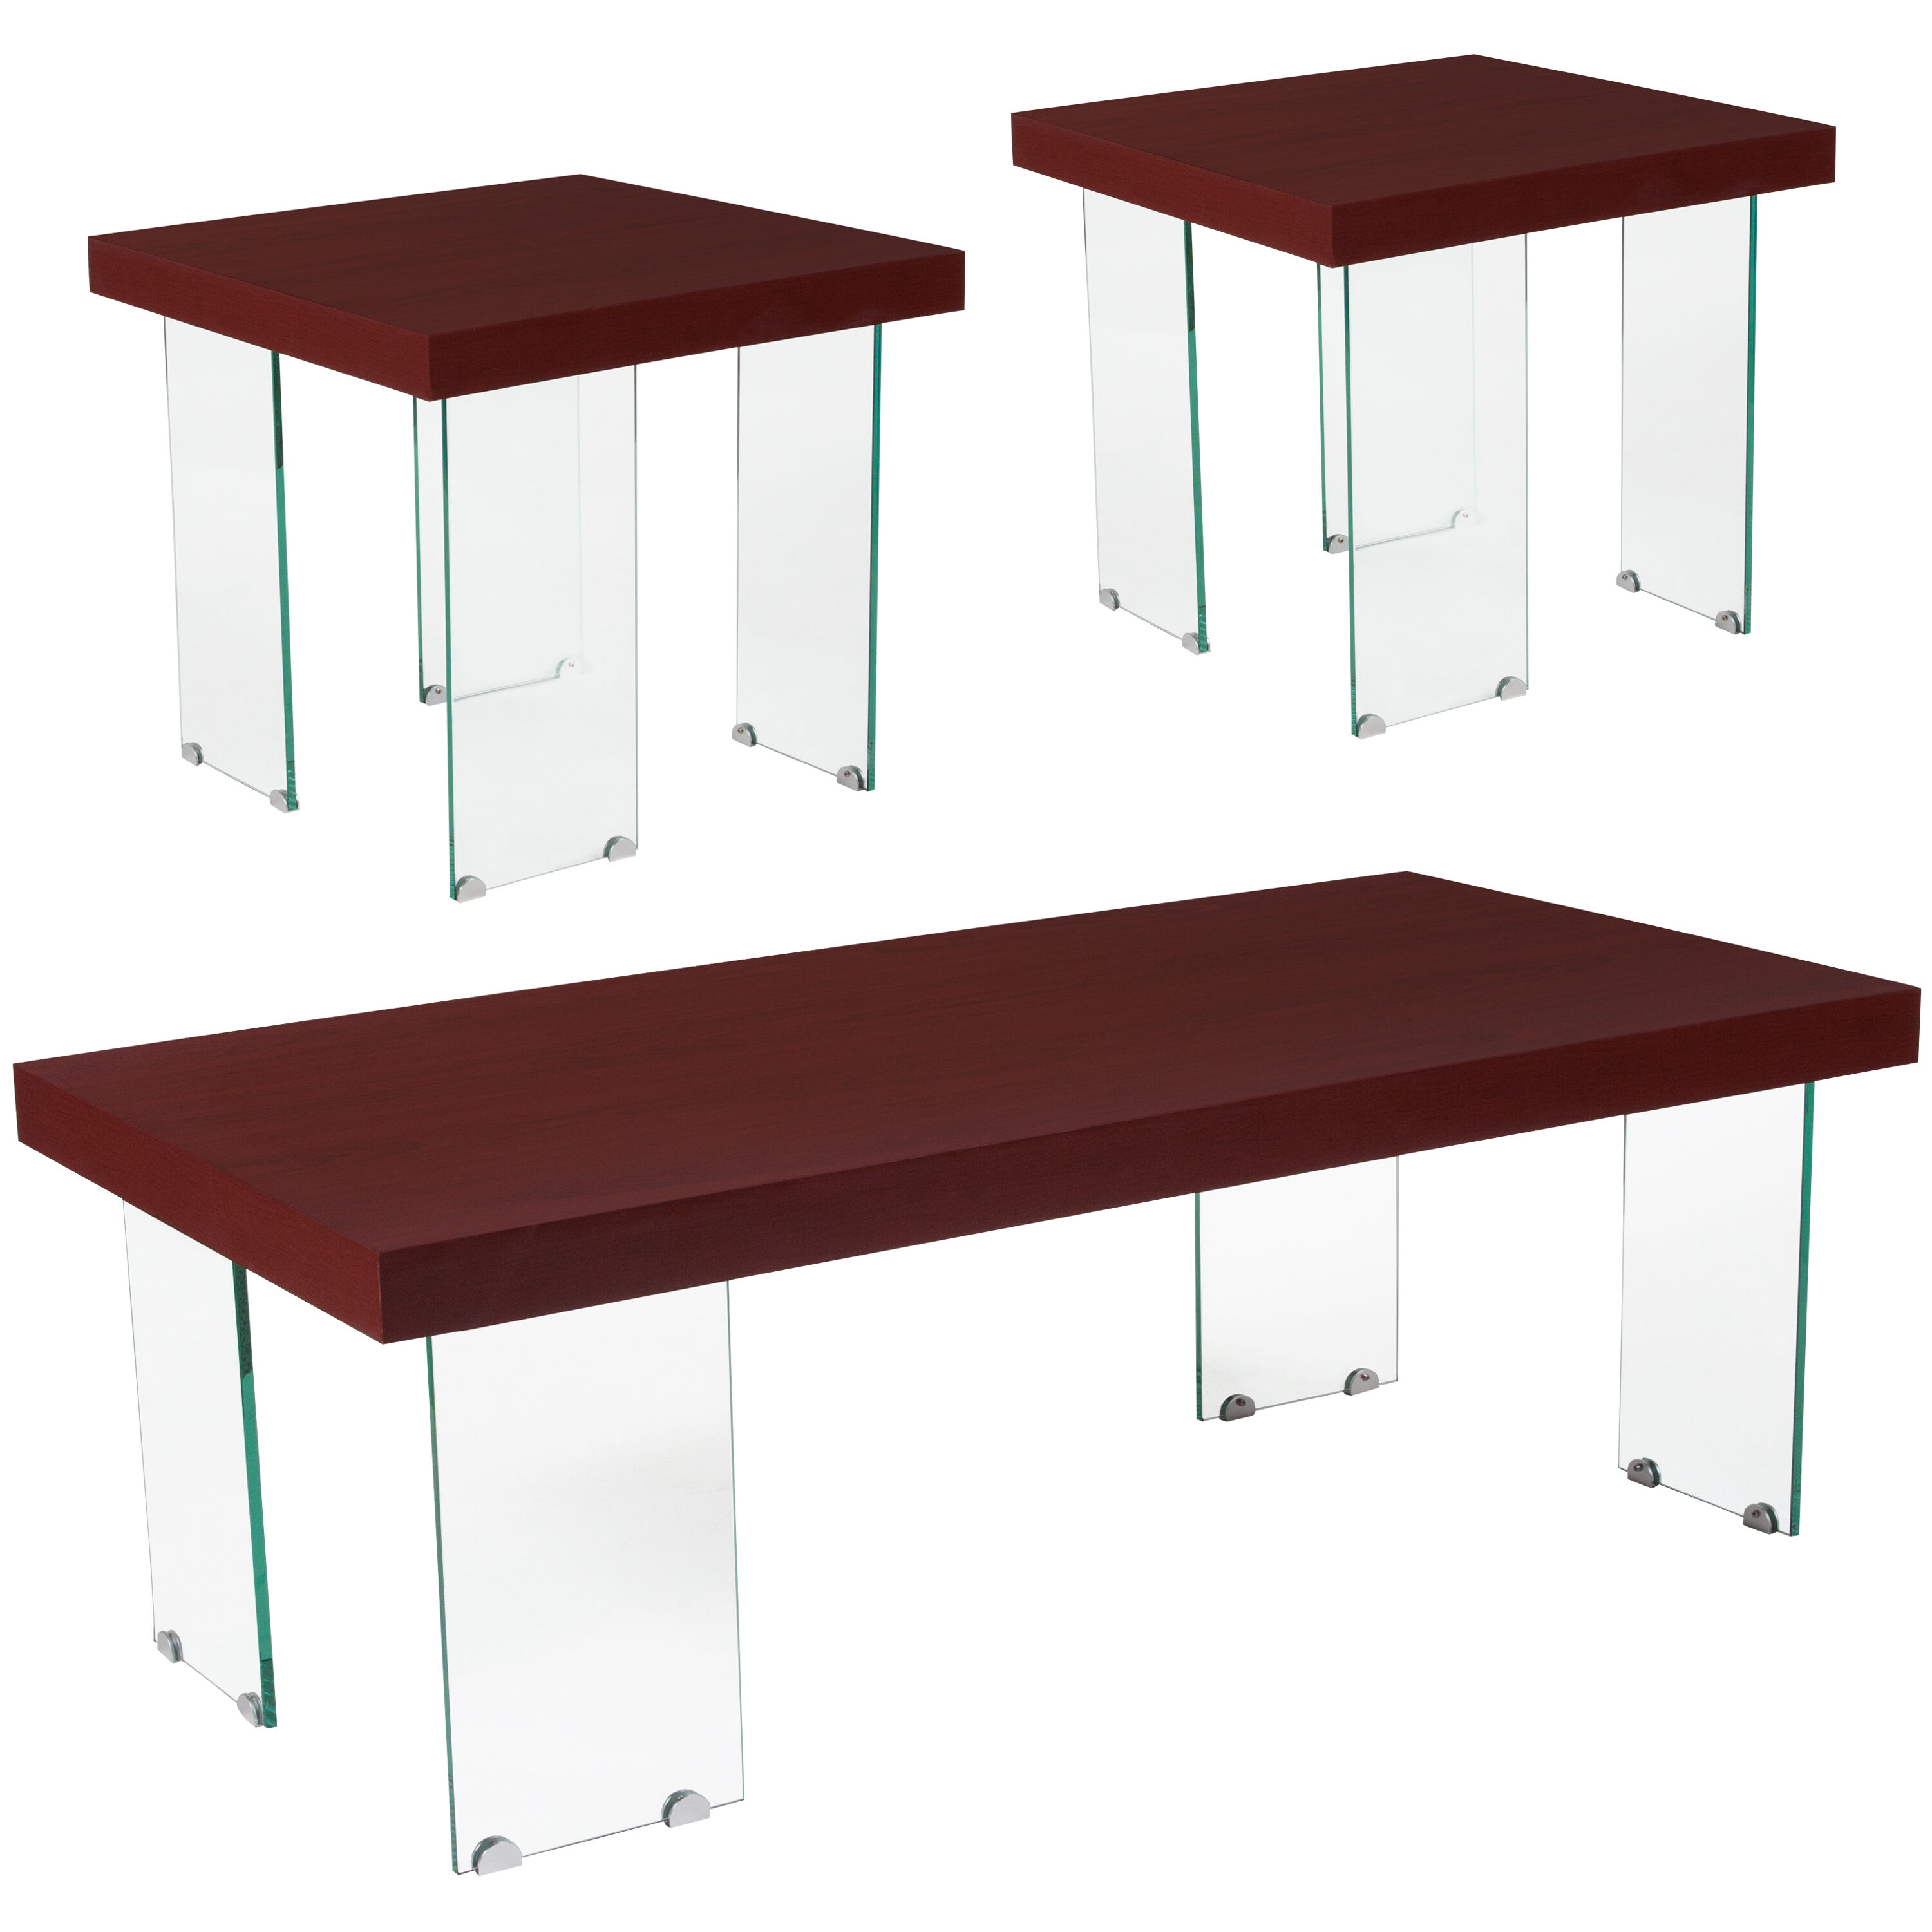 Genial ... Our Forest Hills Collection 3 Piece Coffee And End Table Set In Red Cherry  Wood Grain ...